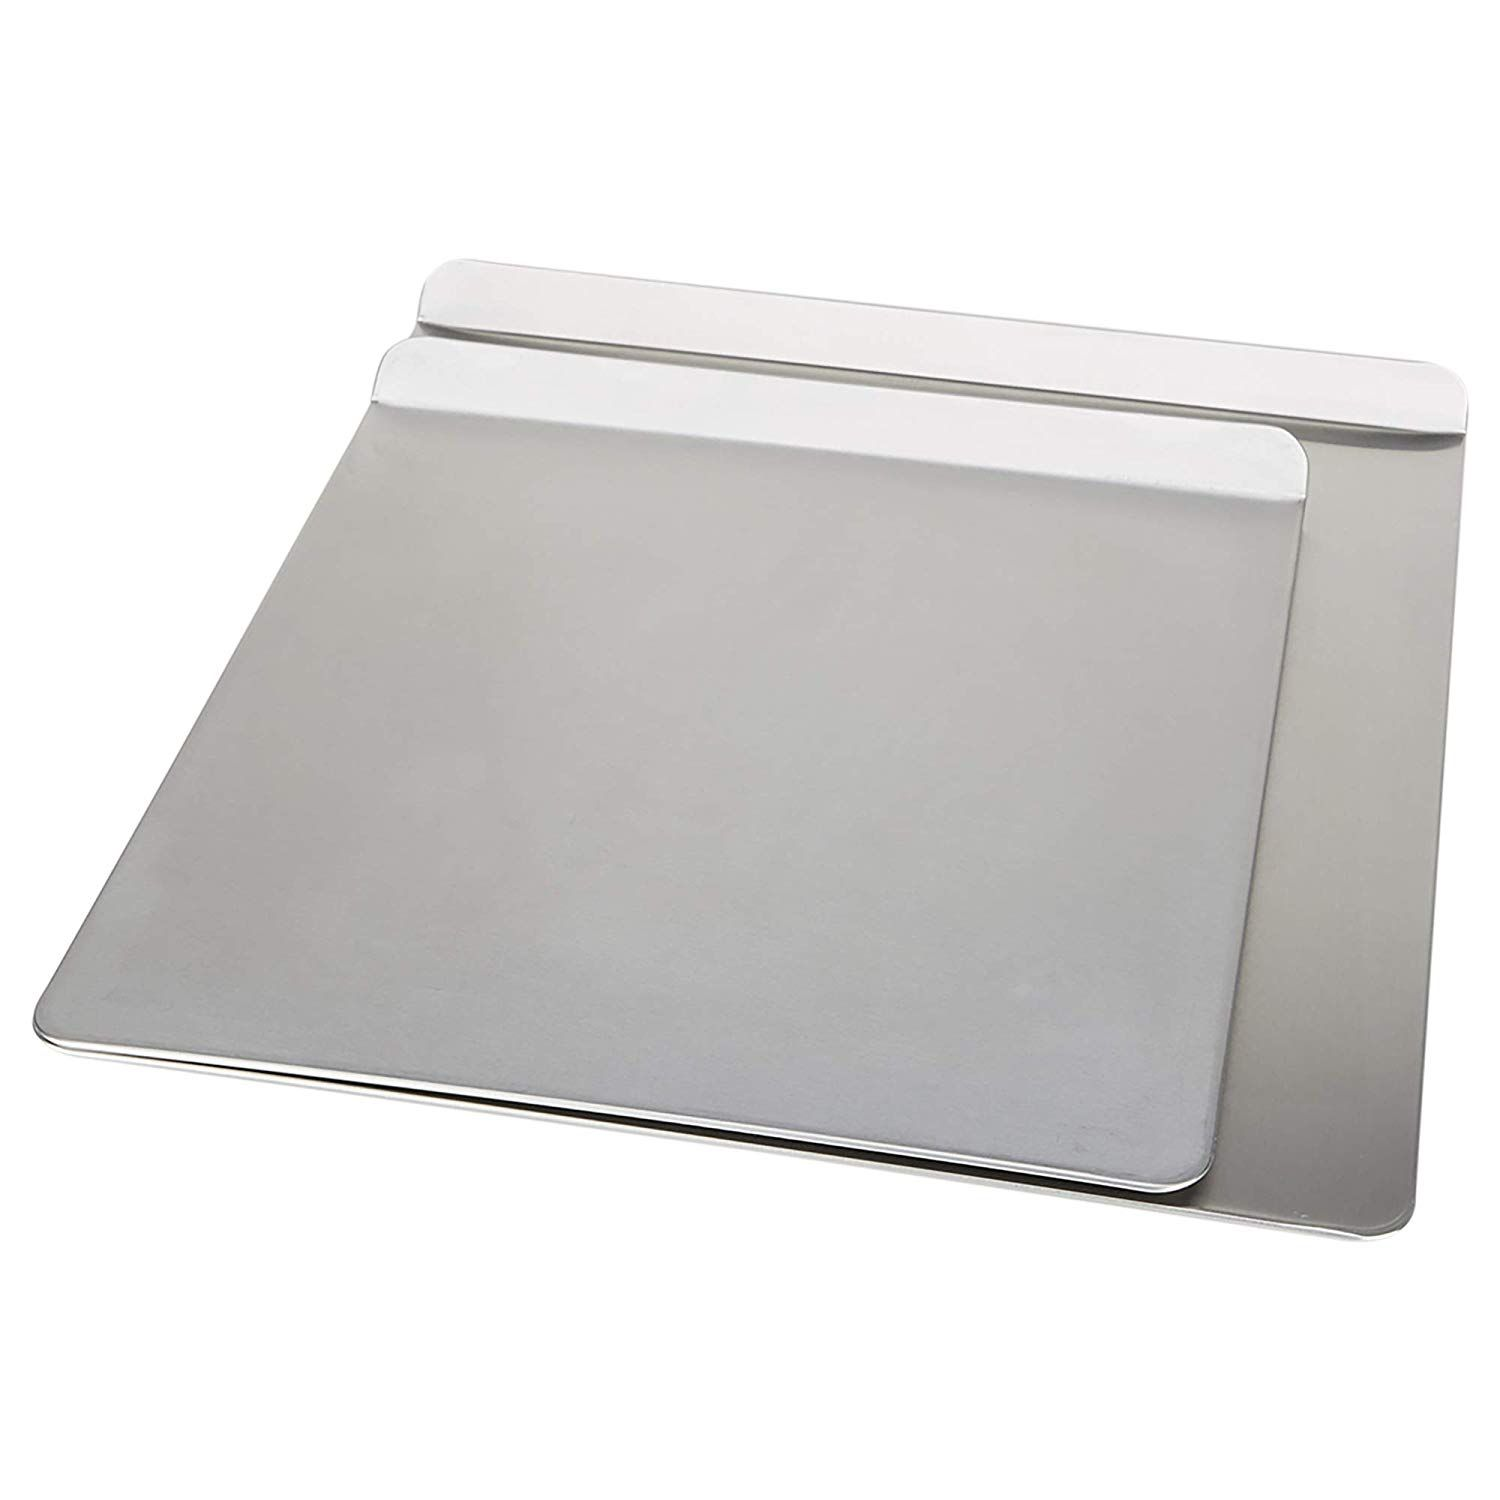 Airbake Natural Aluminum 2 Pack Insulated Cookie Sheet No Burn Design 14 X 12in And 16 X 14in You Can Find Out M Cookie Sheet Aluminum Sheets Bakeware Set